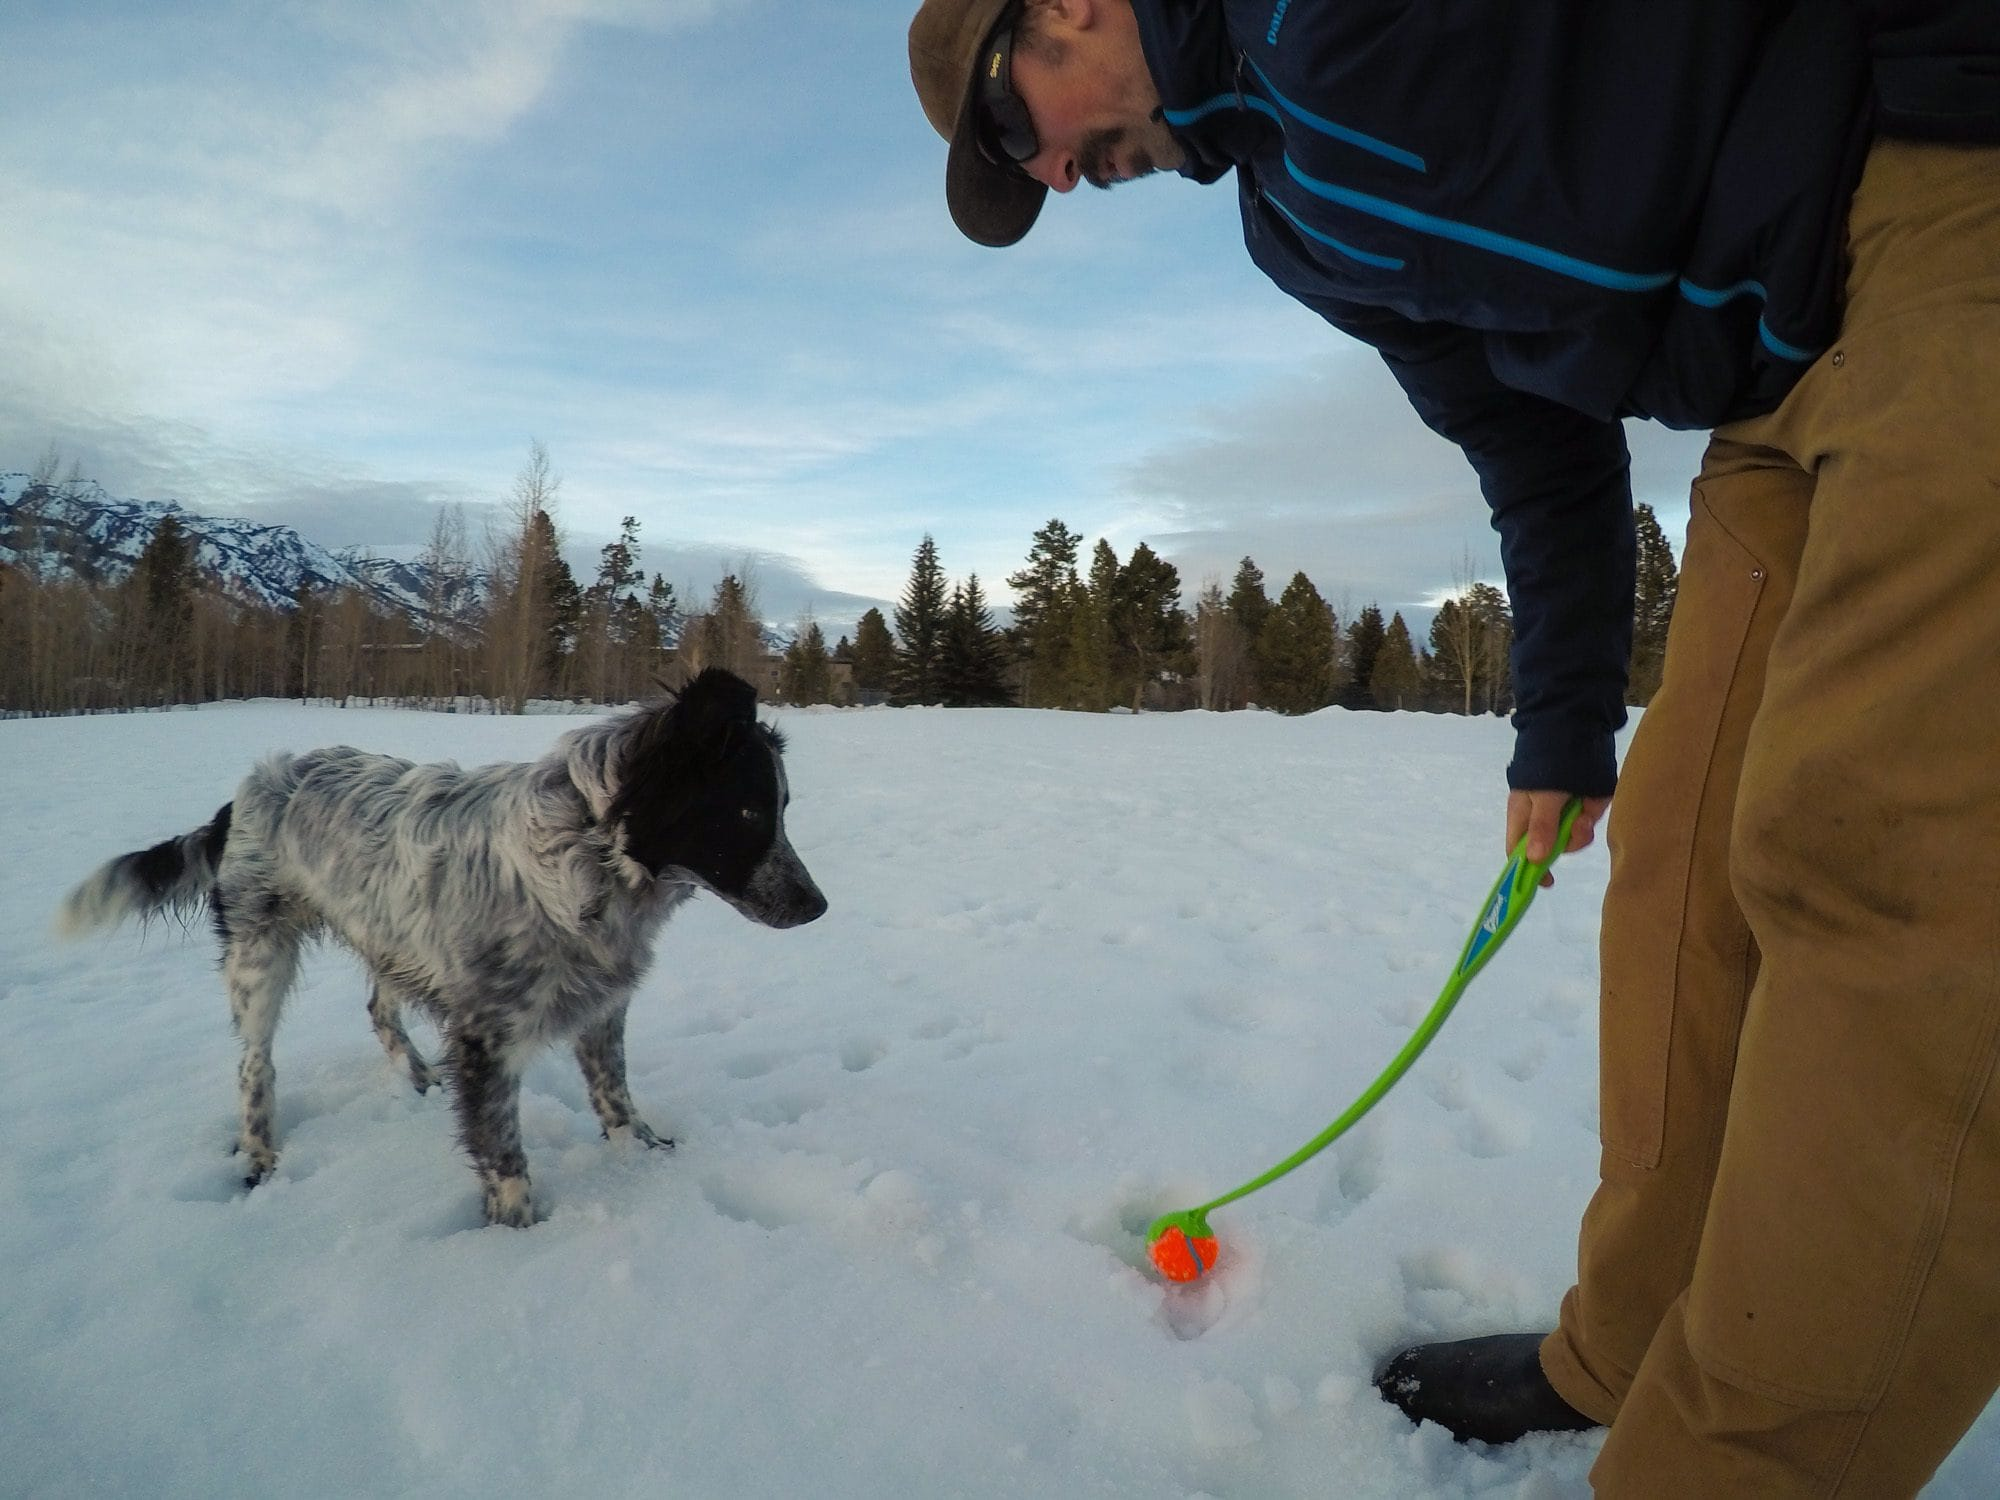 Want to take your canine companion on the trail? Learn how to safely go backpacking with a dog with these 12 dog backpacking tips, including dog nutrition & hydration, dog backpacking gear, leave no trace best practices, and training.